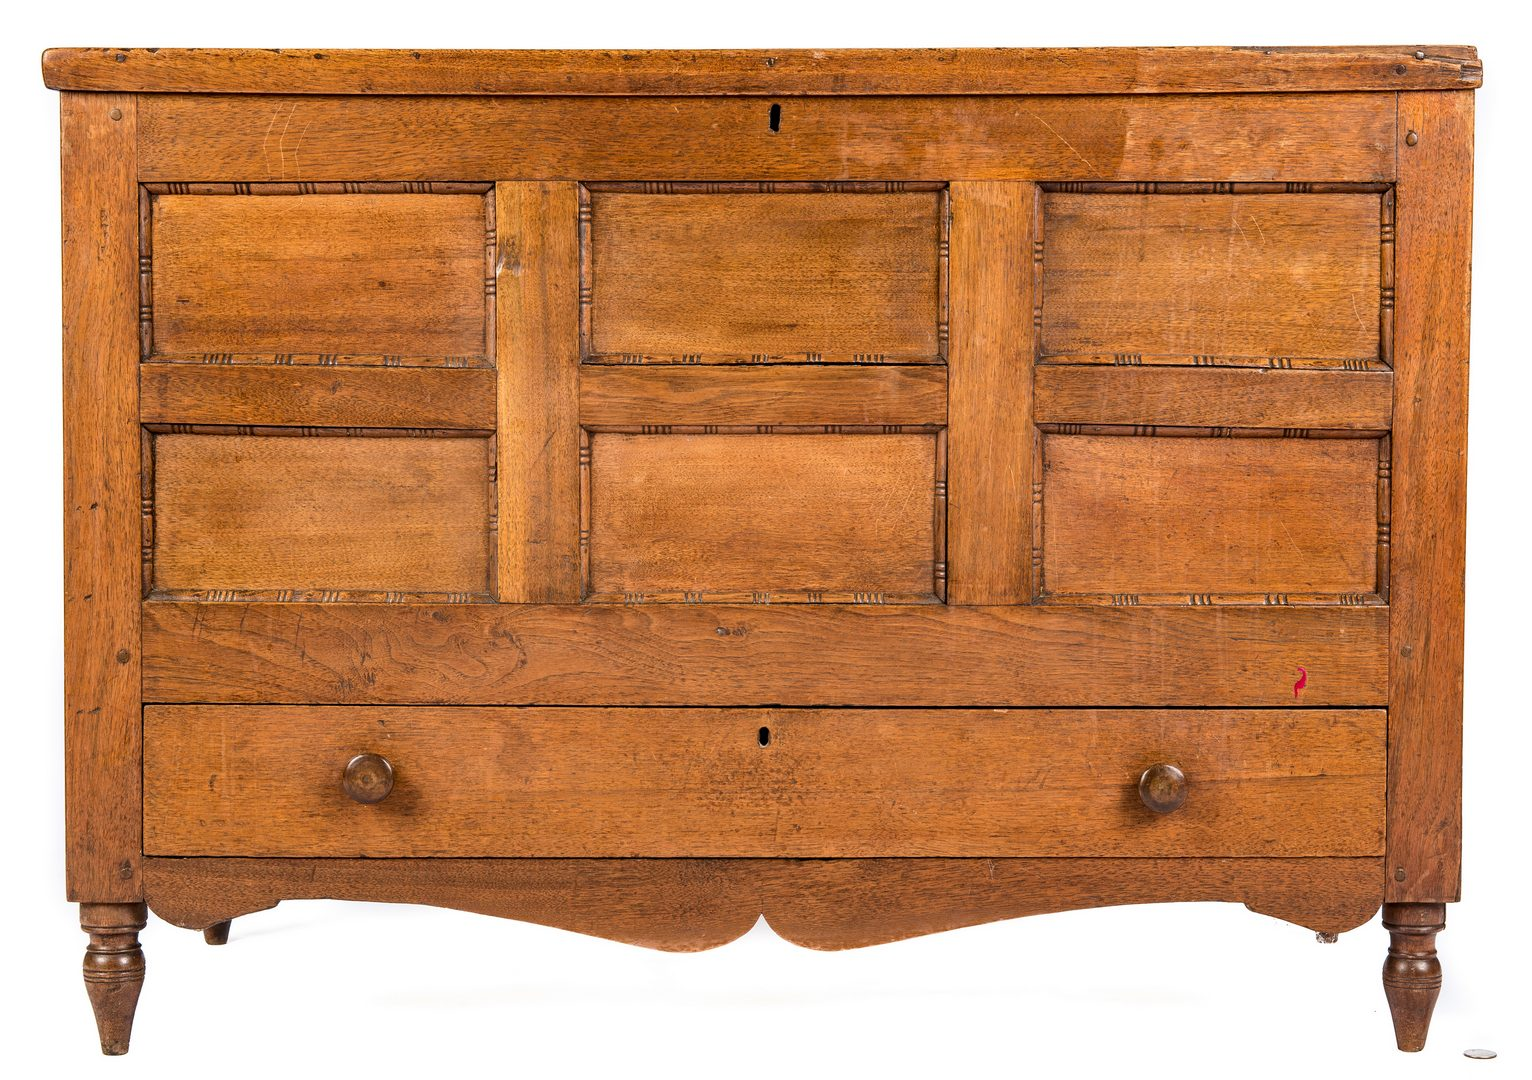 Lot 159: East TN Sheraton Paneled Blanket Chest